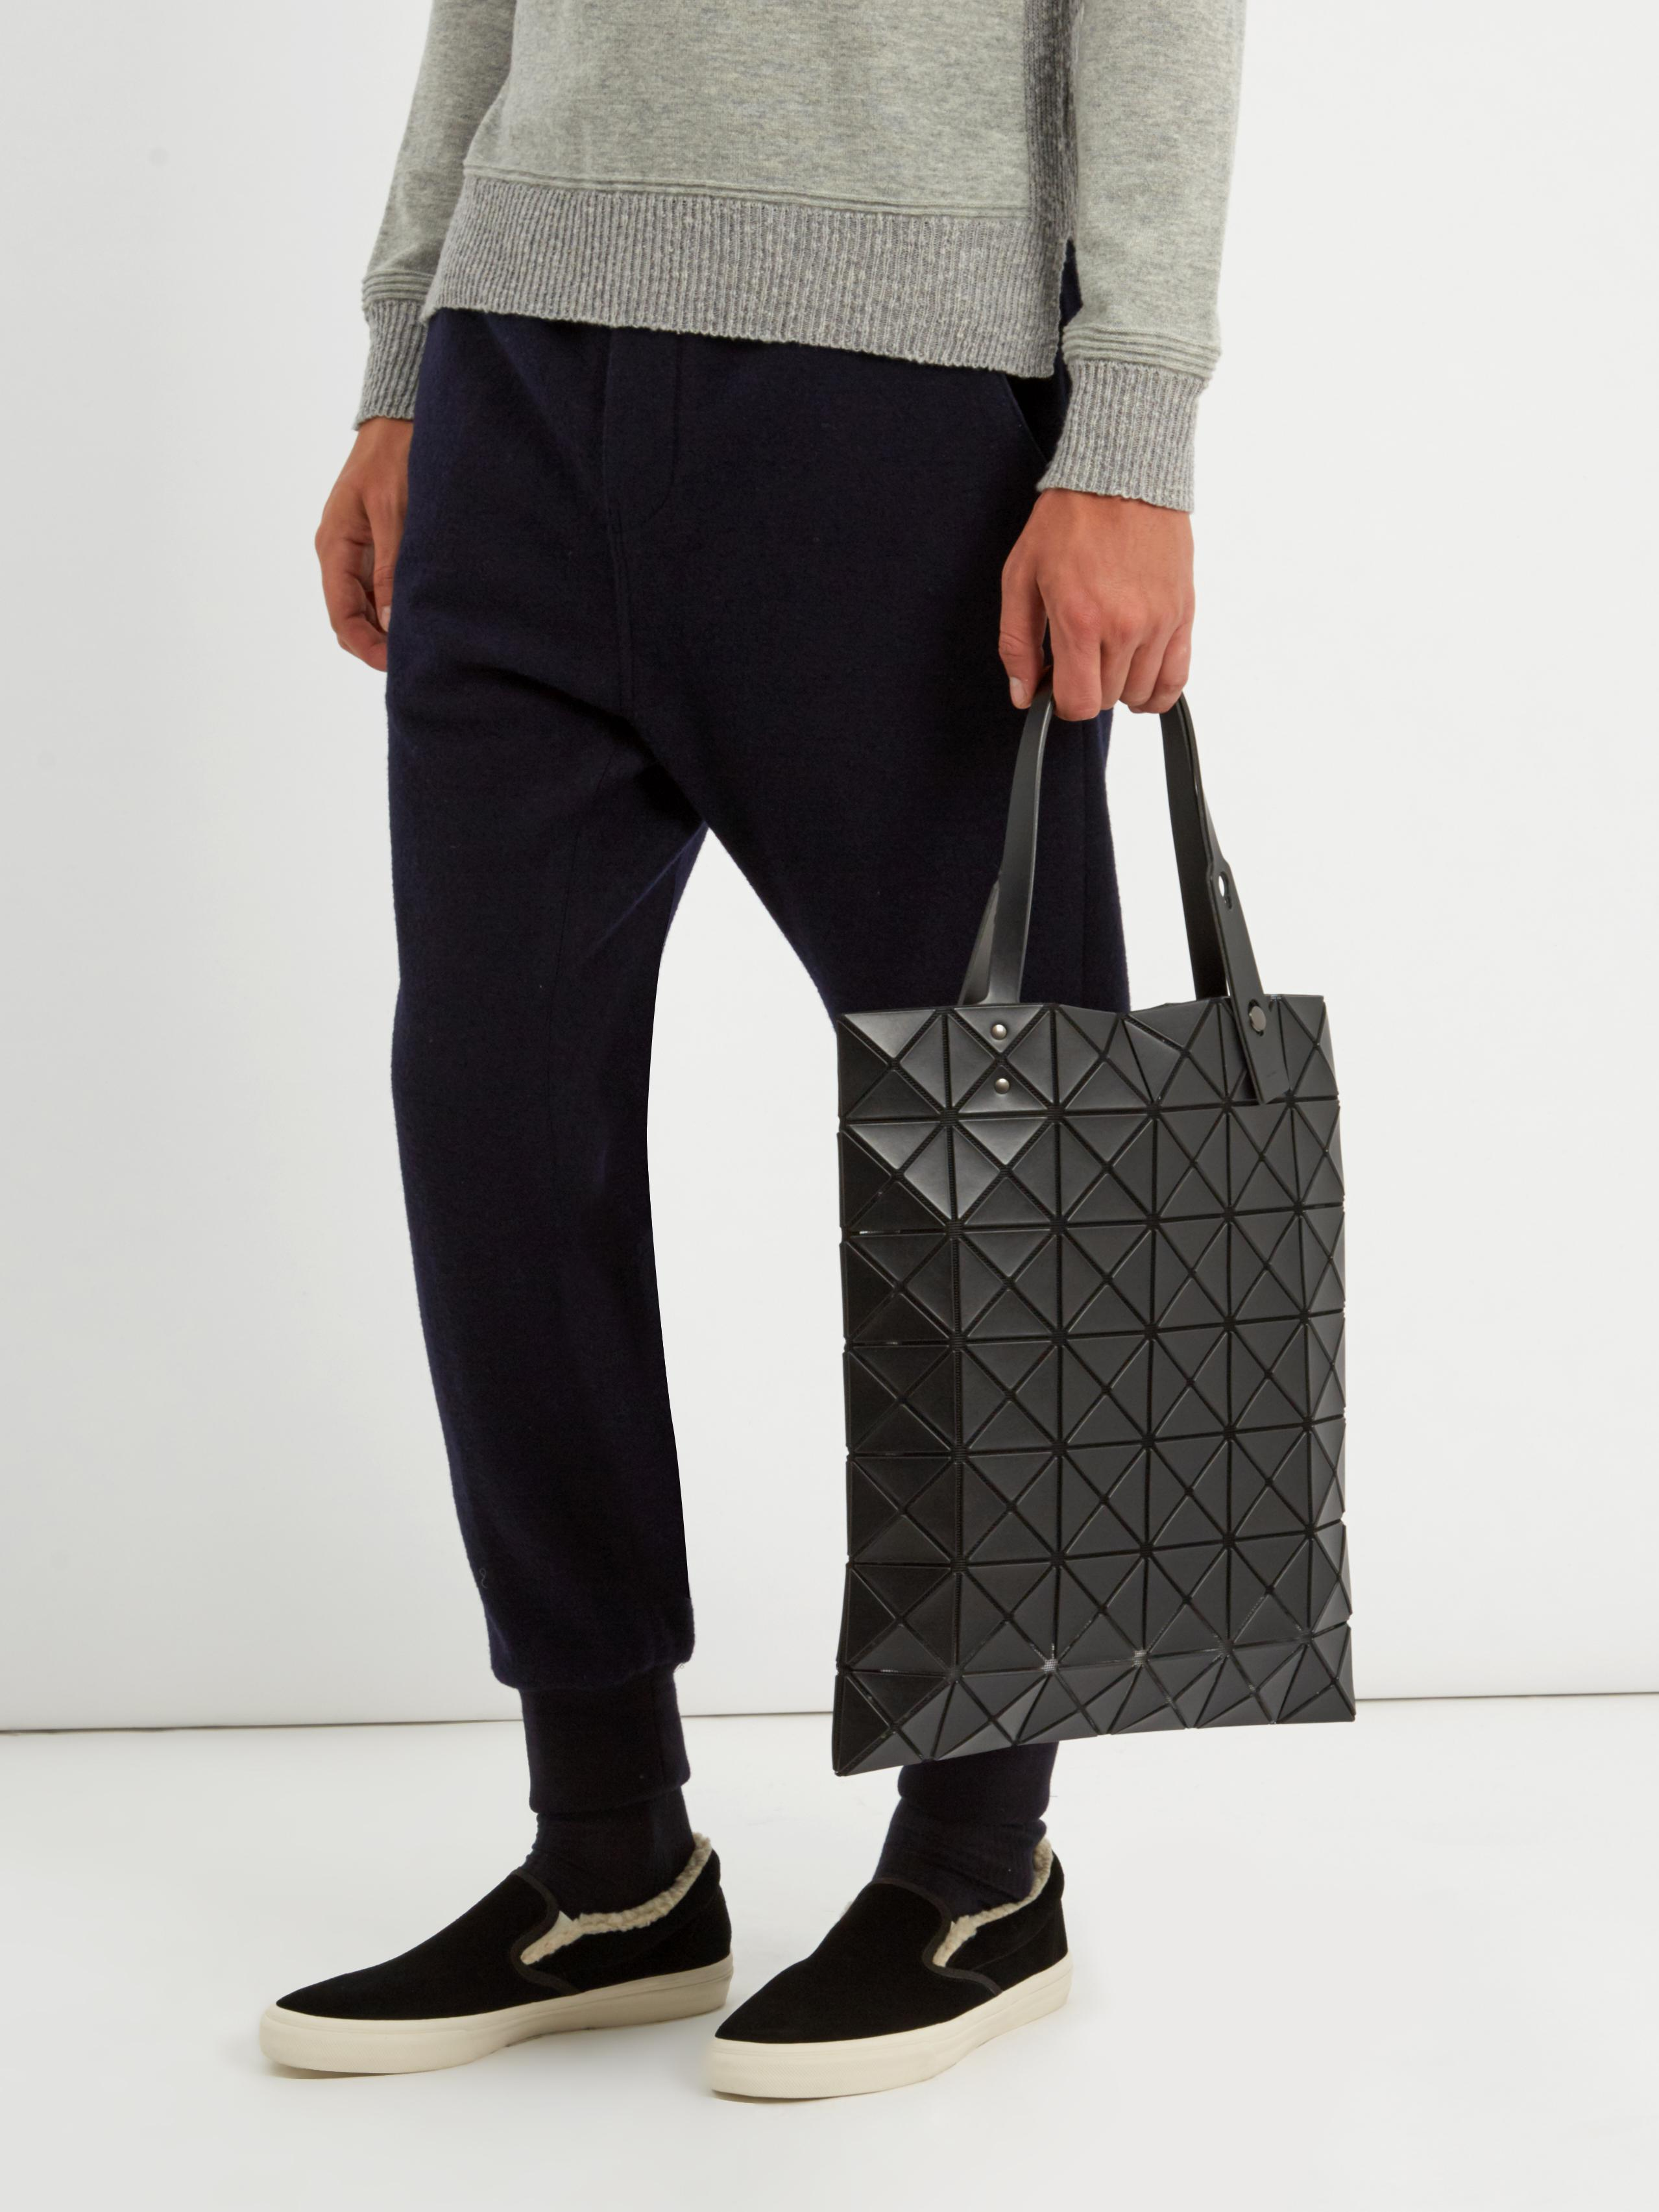 Lyst - Bao Bao Issey Miyake Lucent Matte Tote in Black 2bddceaa173e6